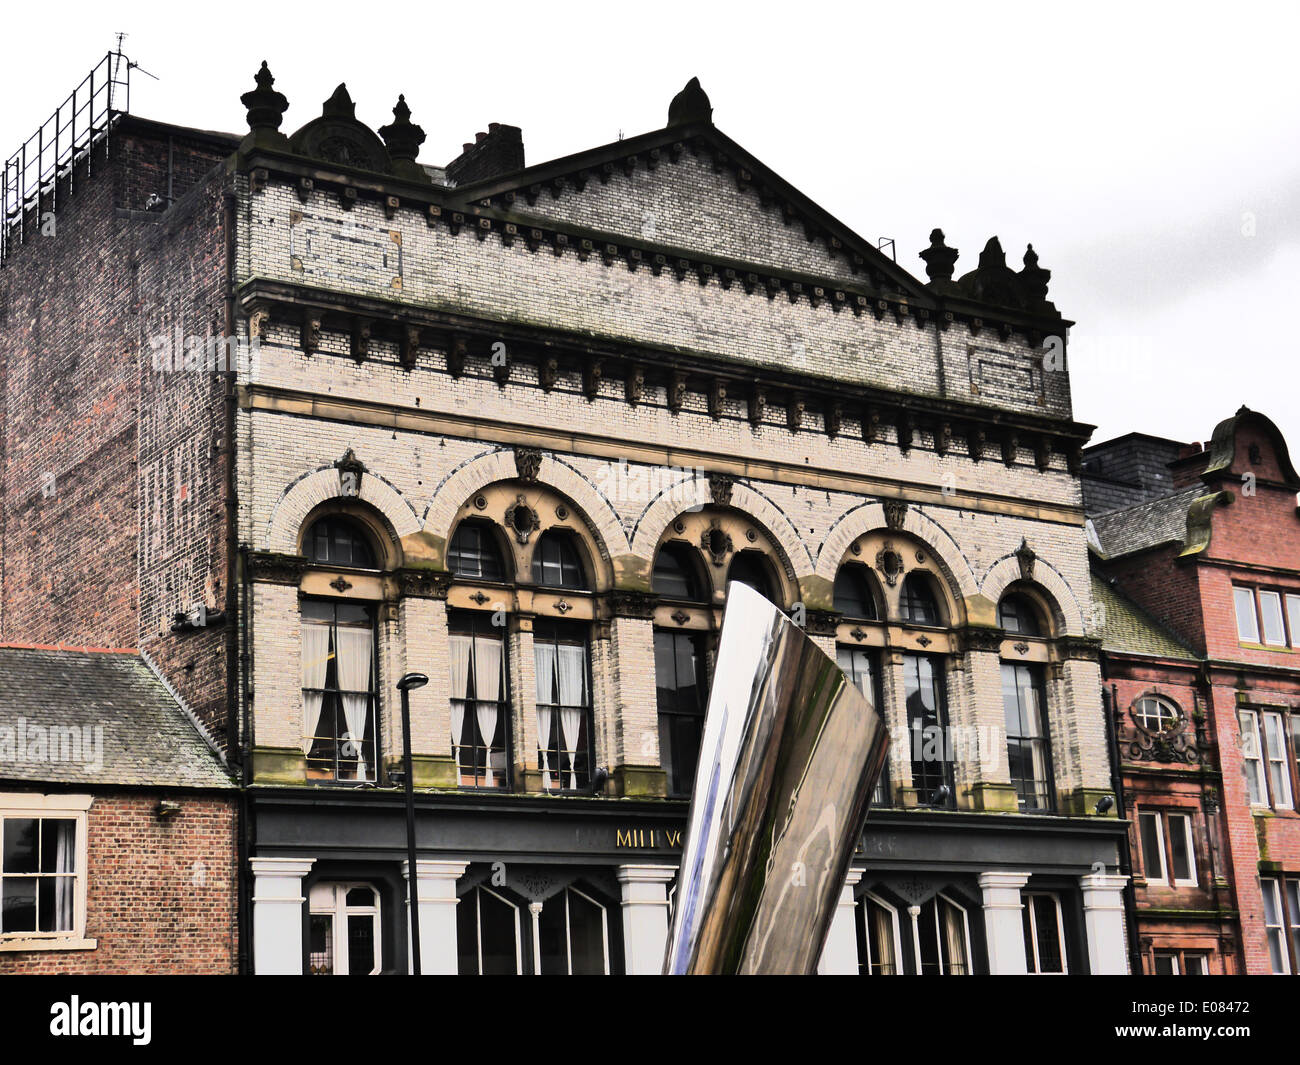 Creative image of Mills Volvo Tyne theatre with modern artwork in foreground, Newcastle upon Tyne, UK - Stock Image